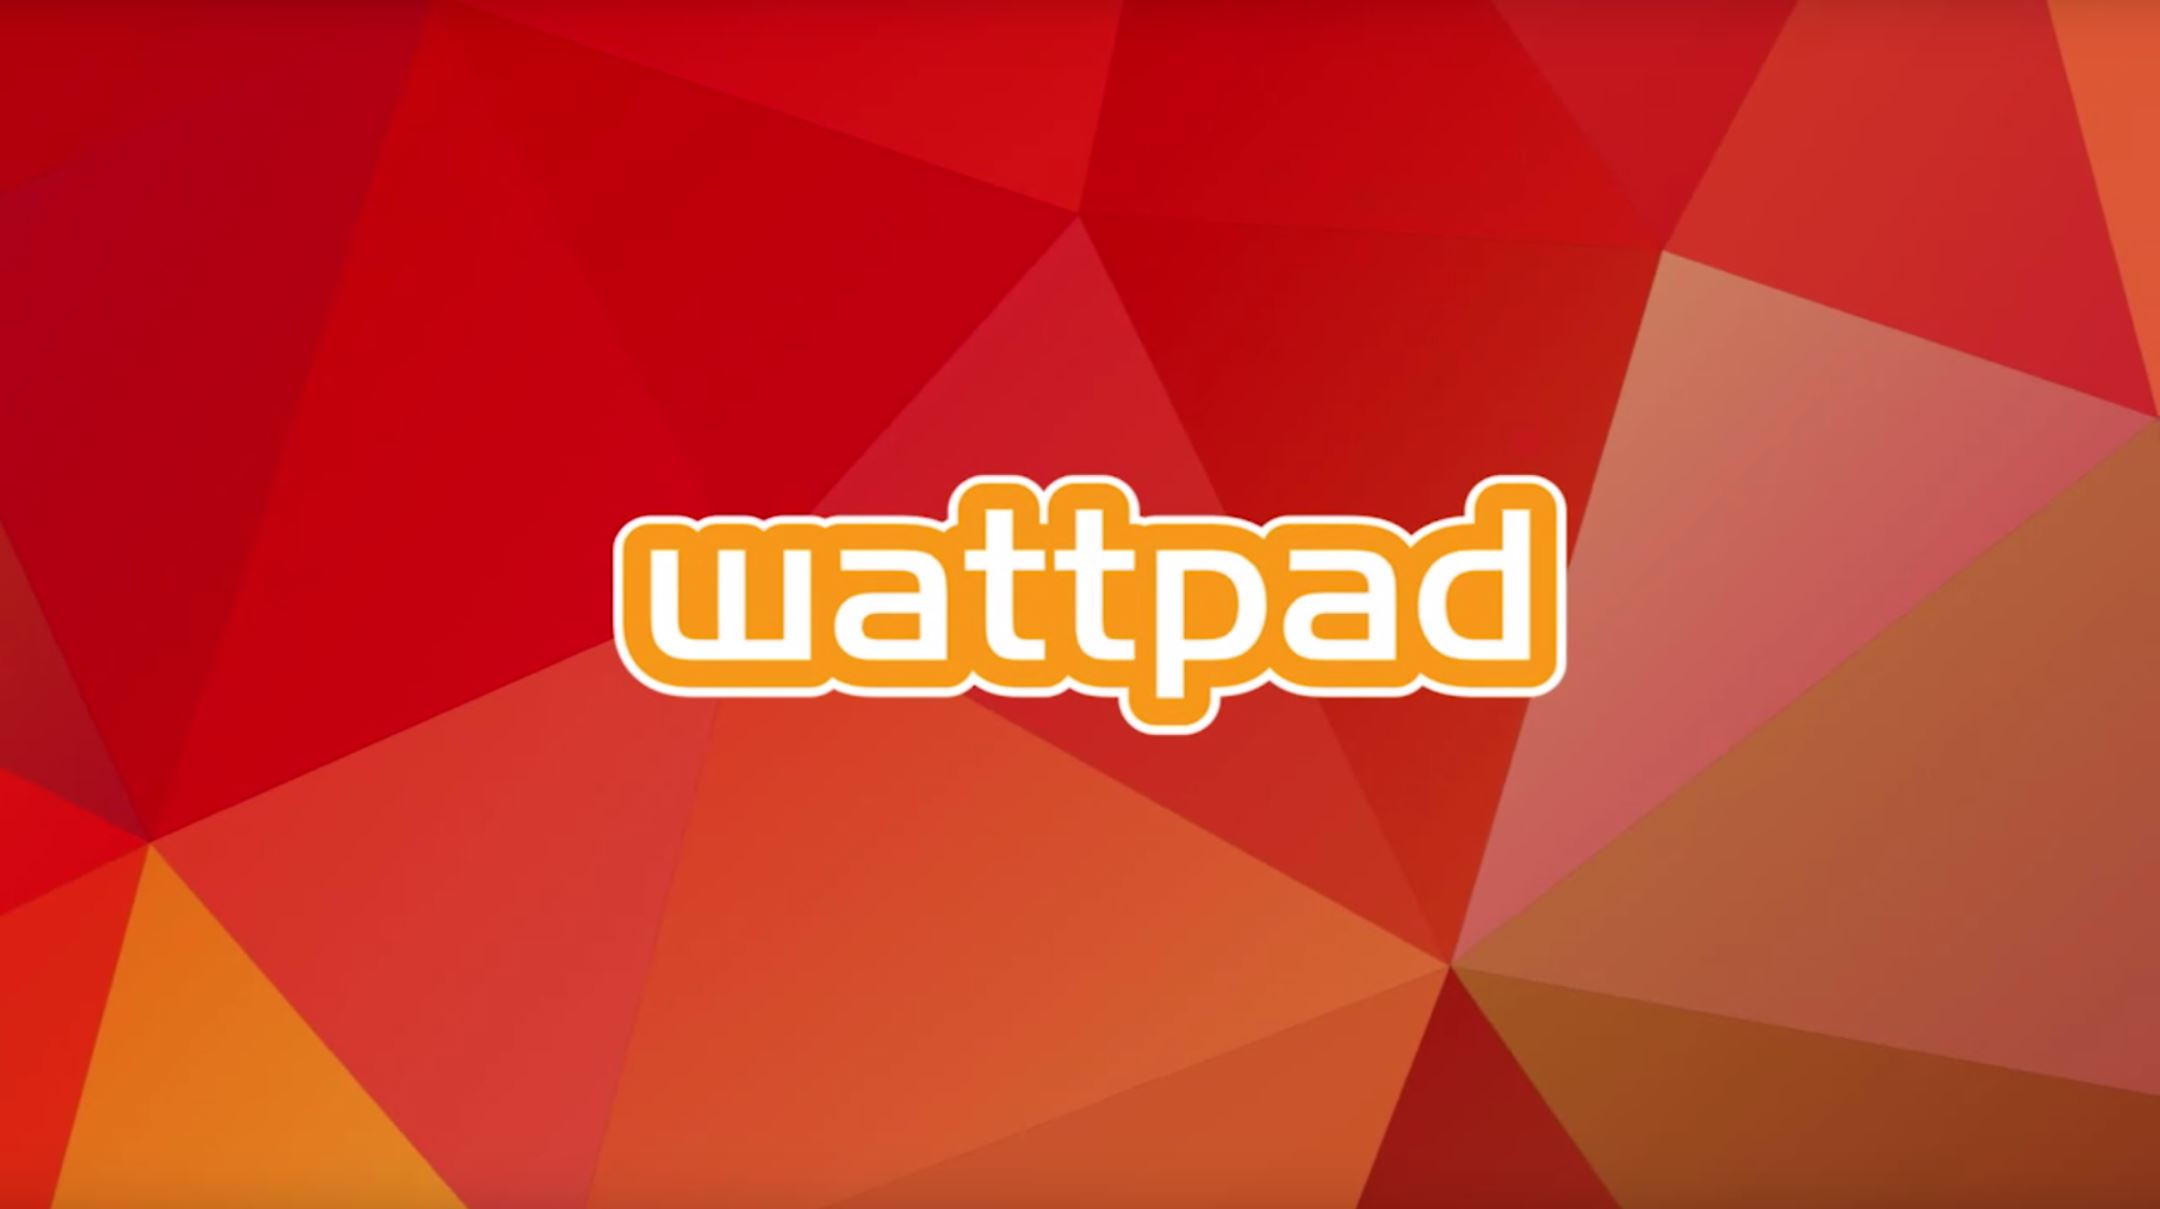 Wattpad a community for writers appears to have been hacked stopboris Gallery